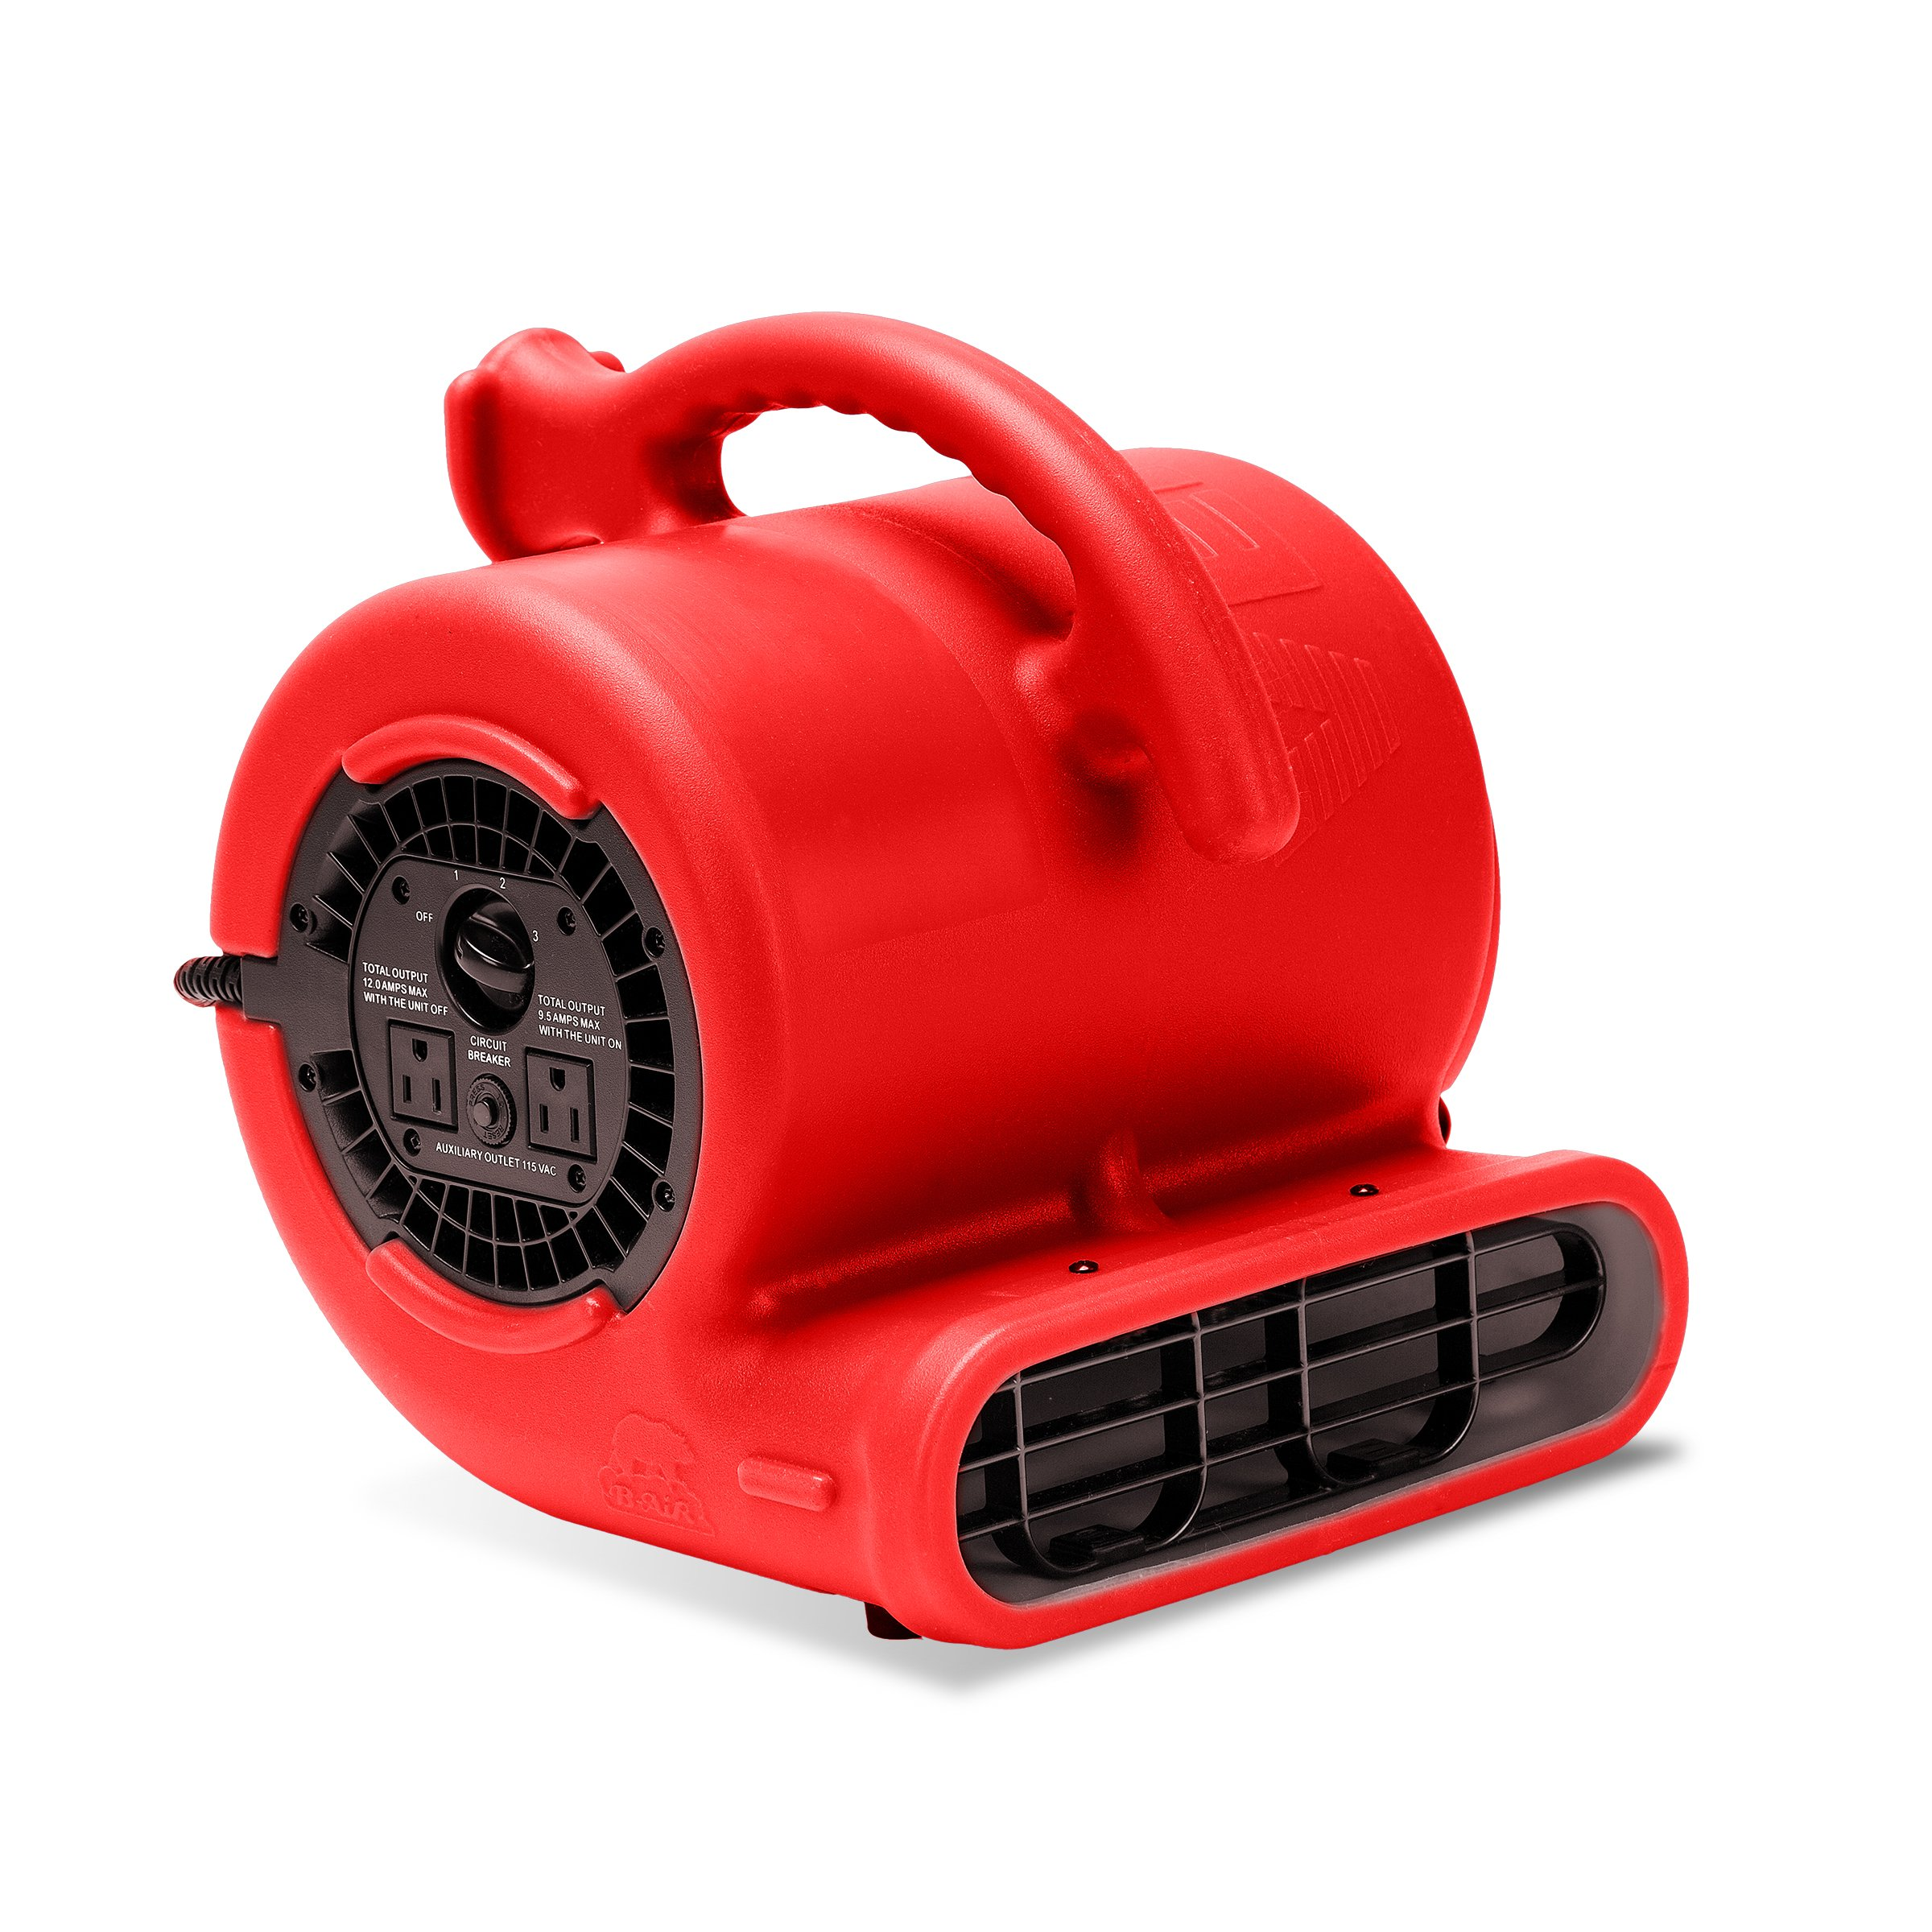 B-Air VP-25 1/4 HP 900 CFM Air Mover for Water Damage Restoration Equipment Carpet Dryer Floor Blower Fan Home and Plumbing Use, Red